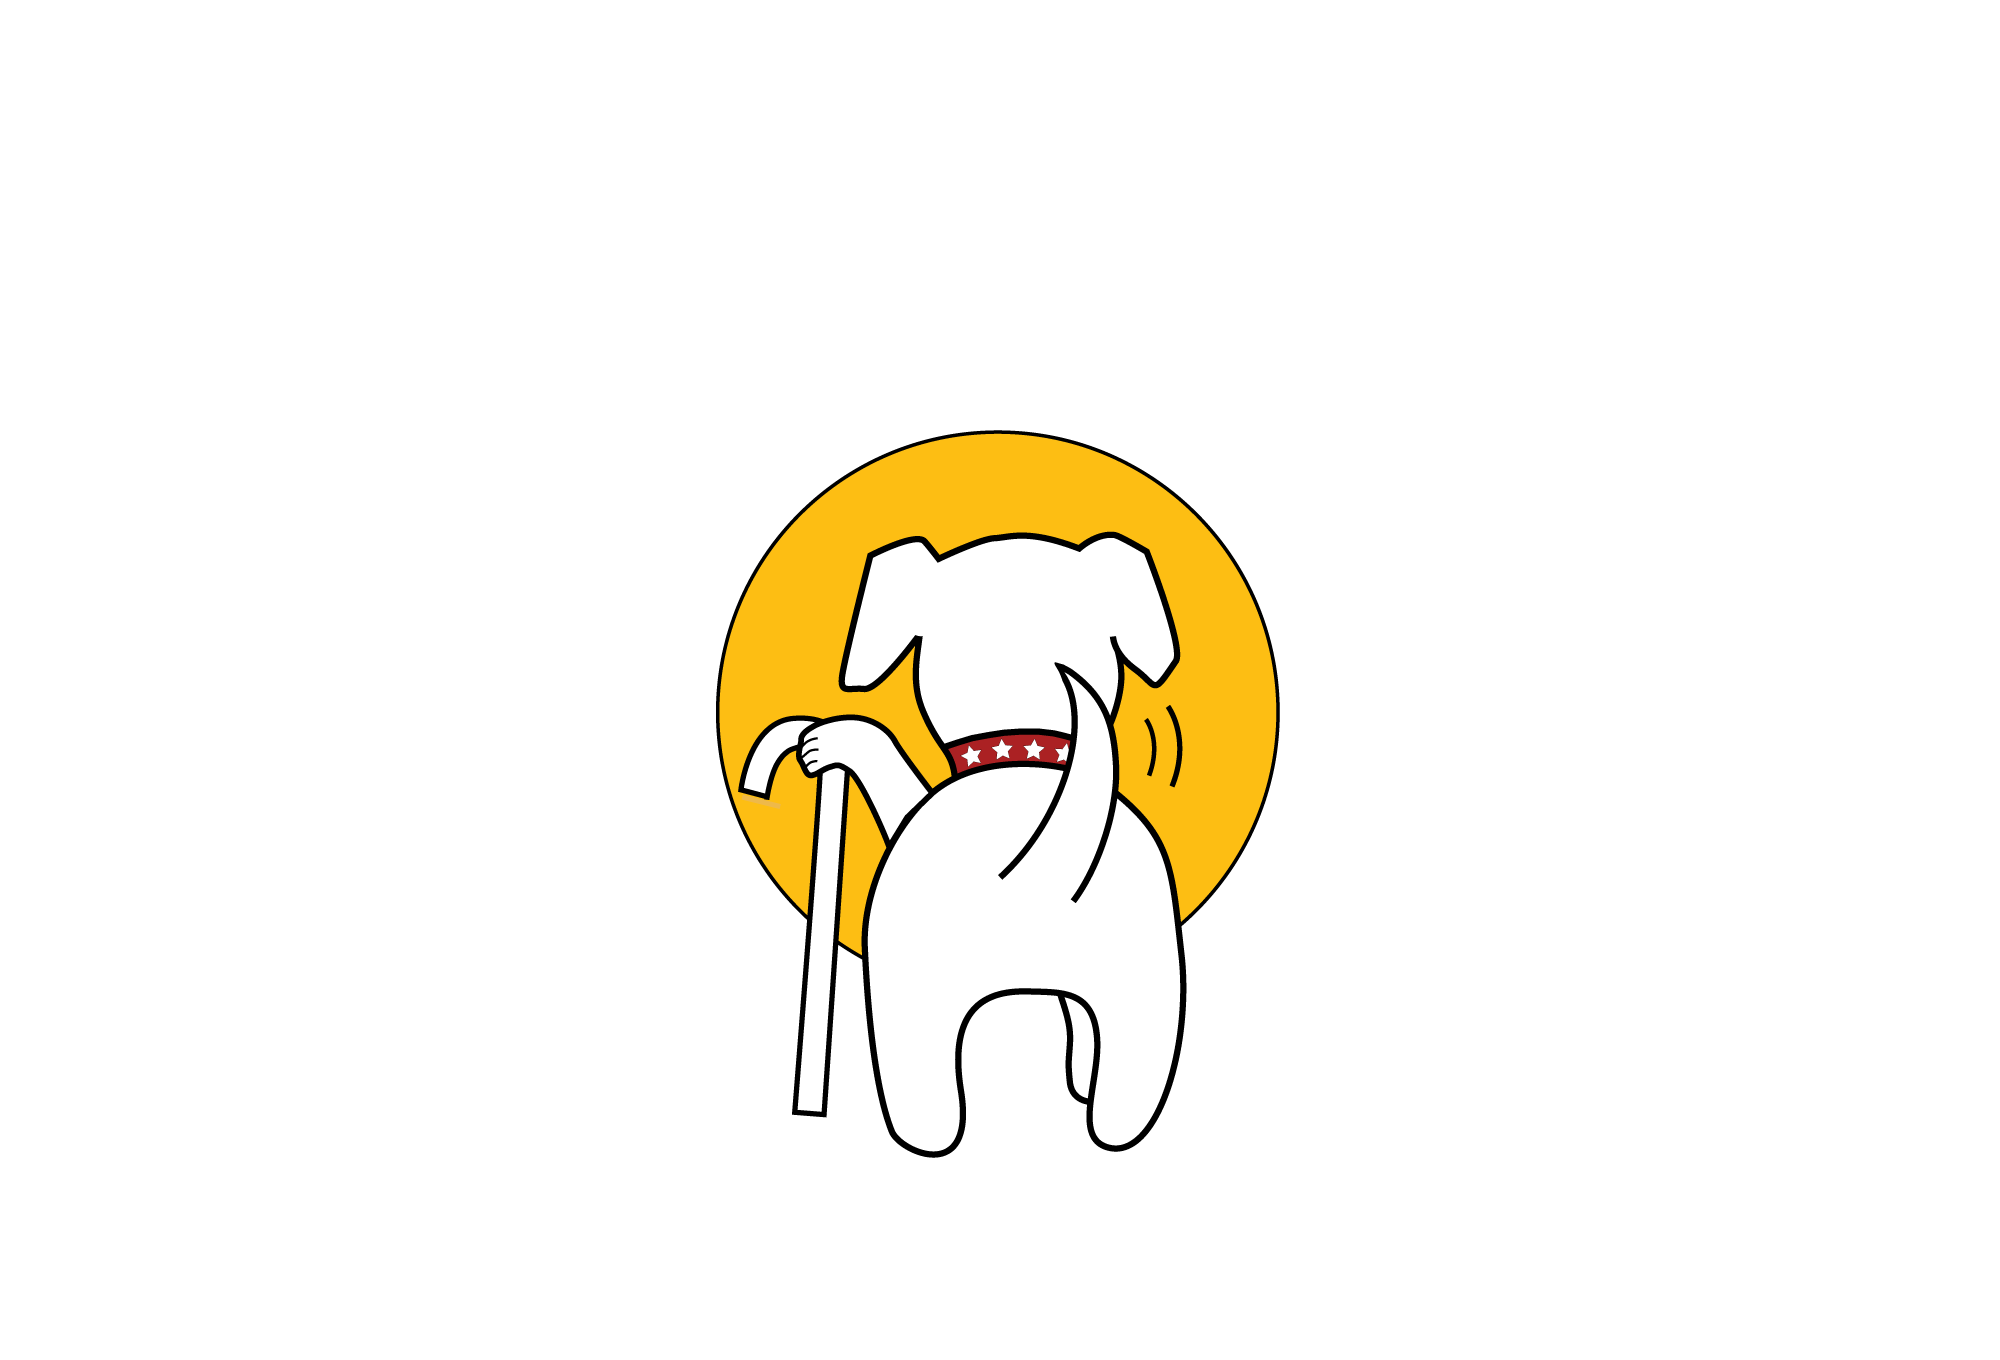 Muttville logo without tagline, full color, for dark backgrounds